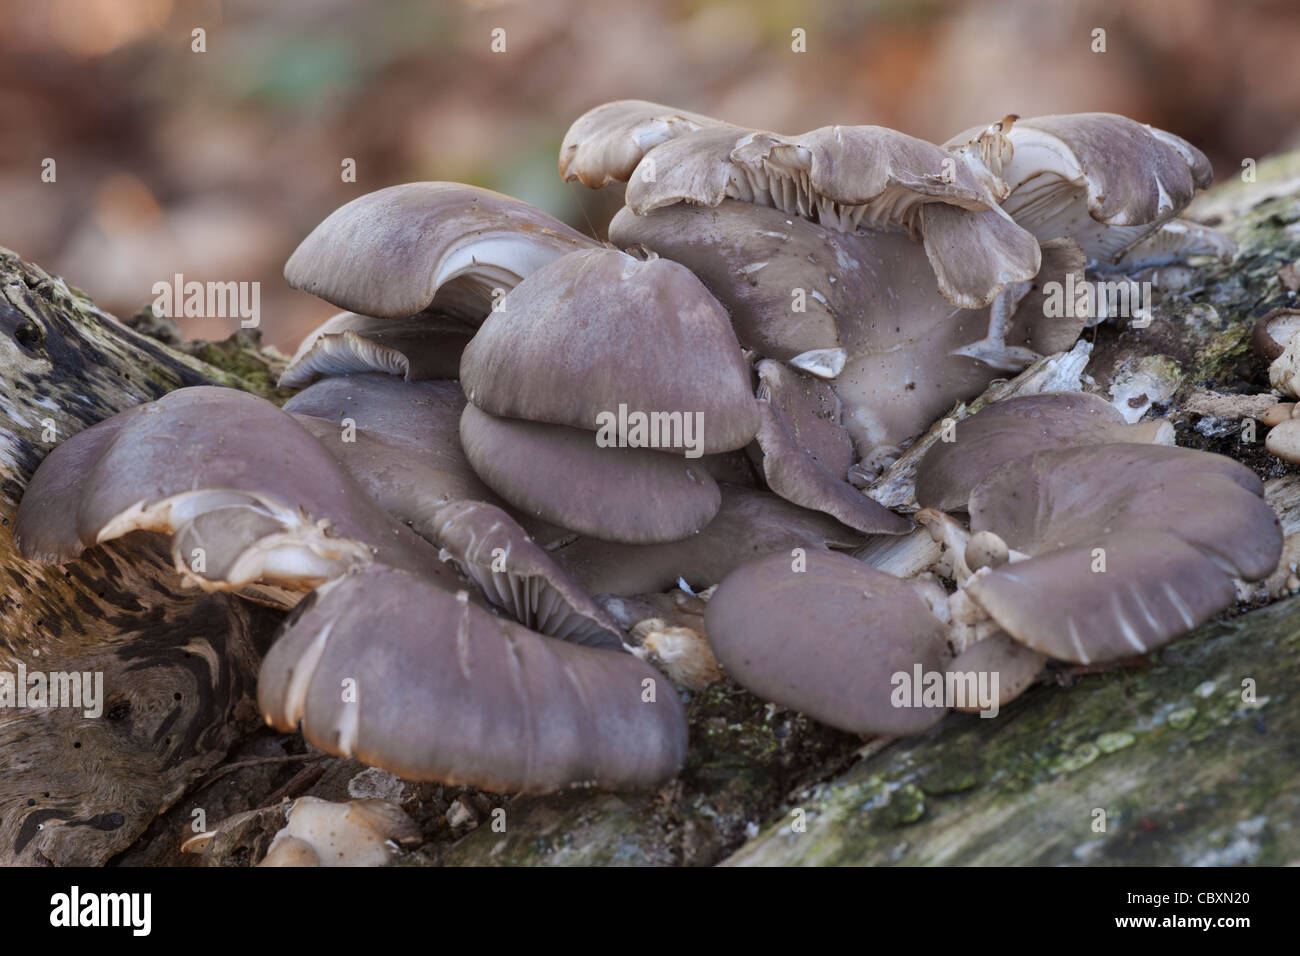 Oyster Mushroom Pleurotus ostreatus fungi fruiting bodies on a dead tree stump - Stock Image